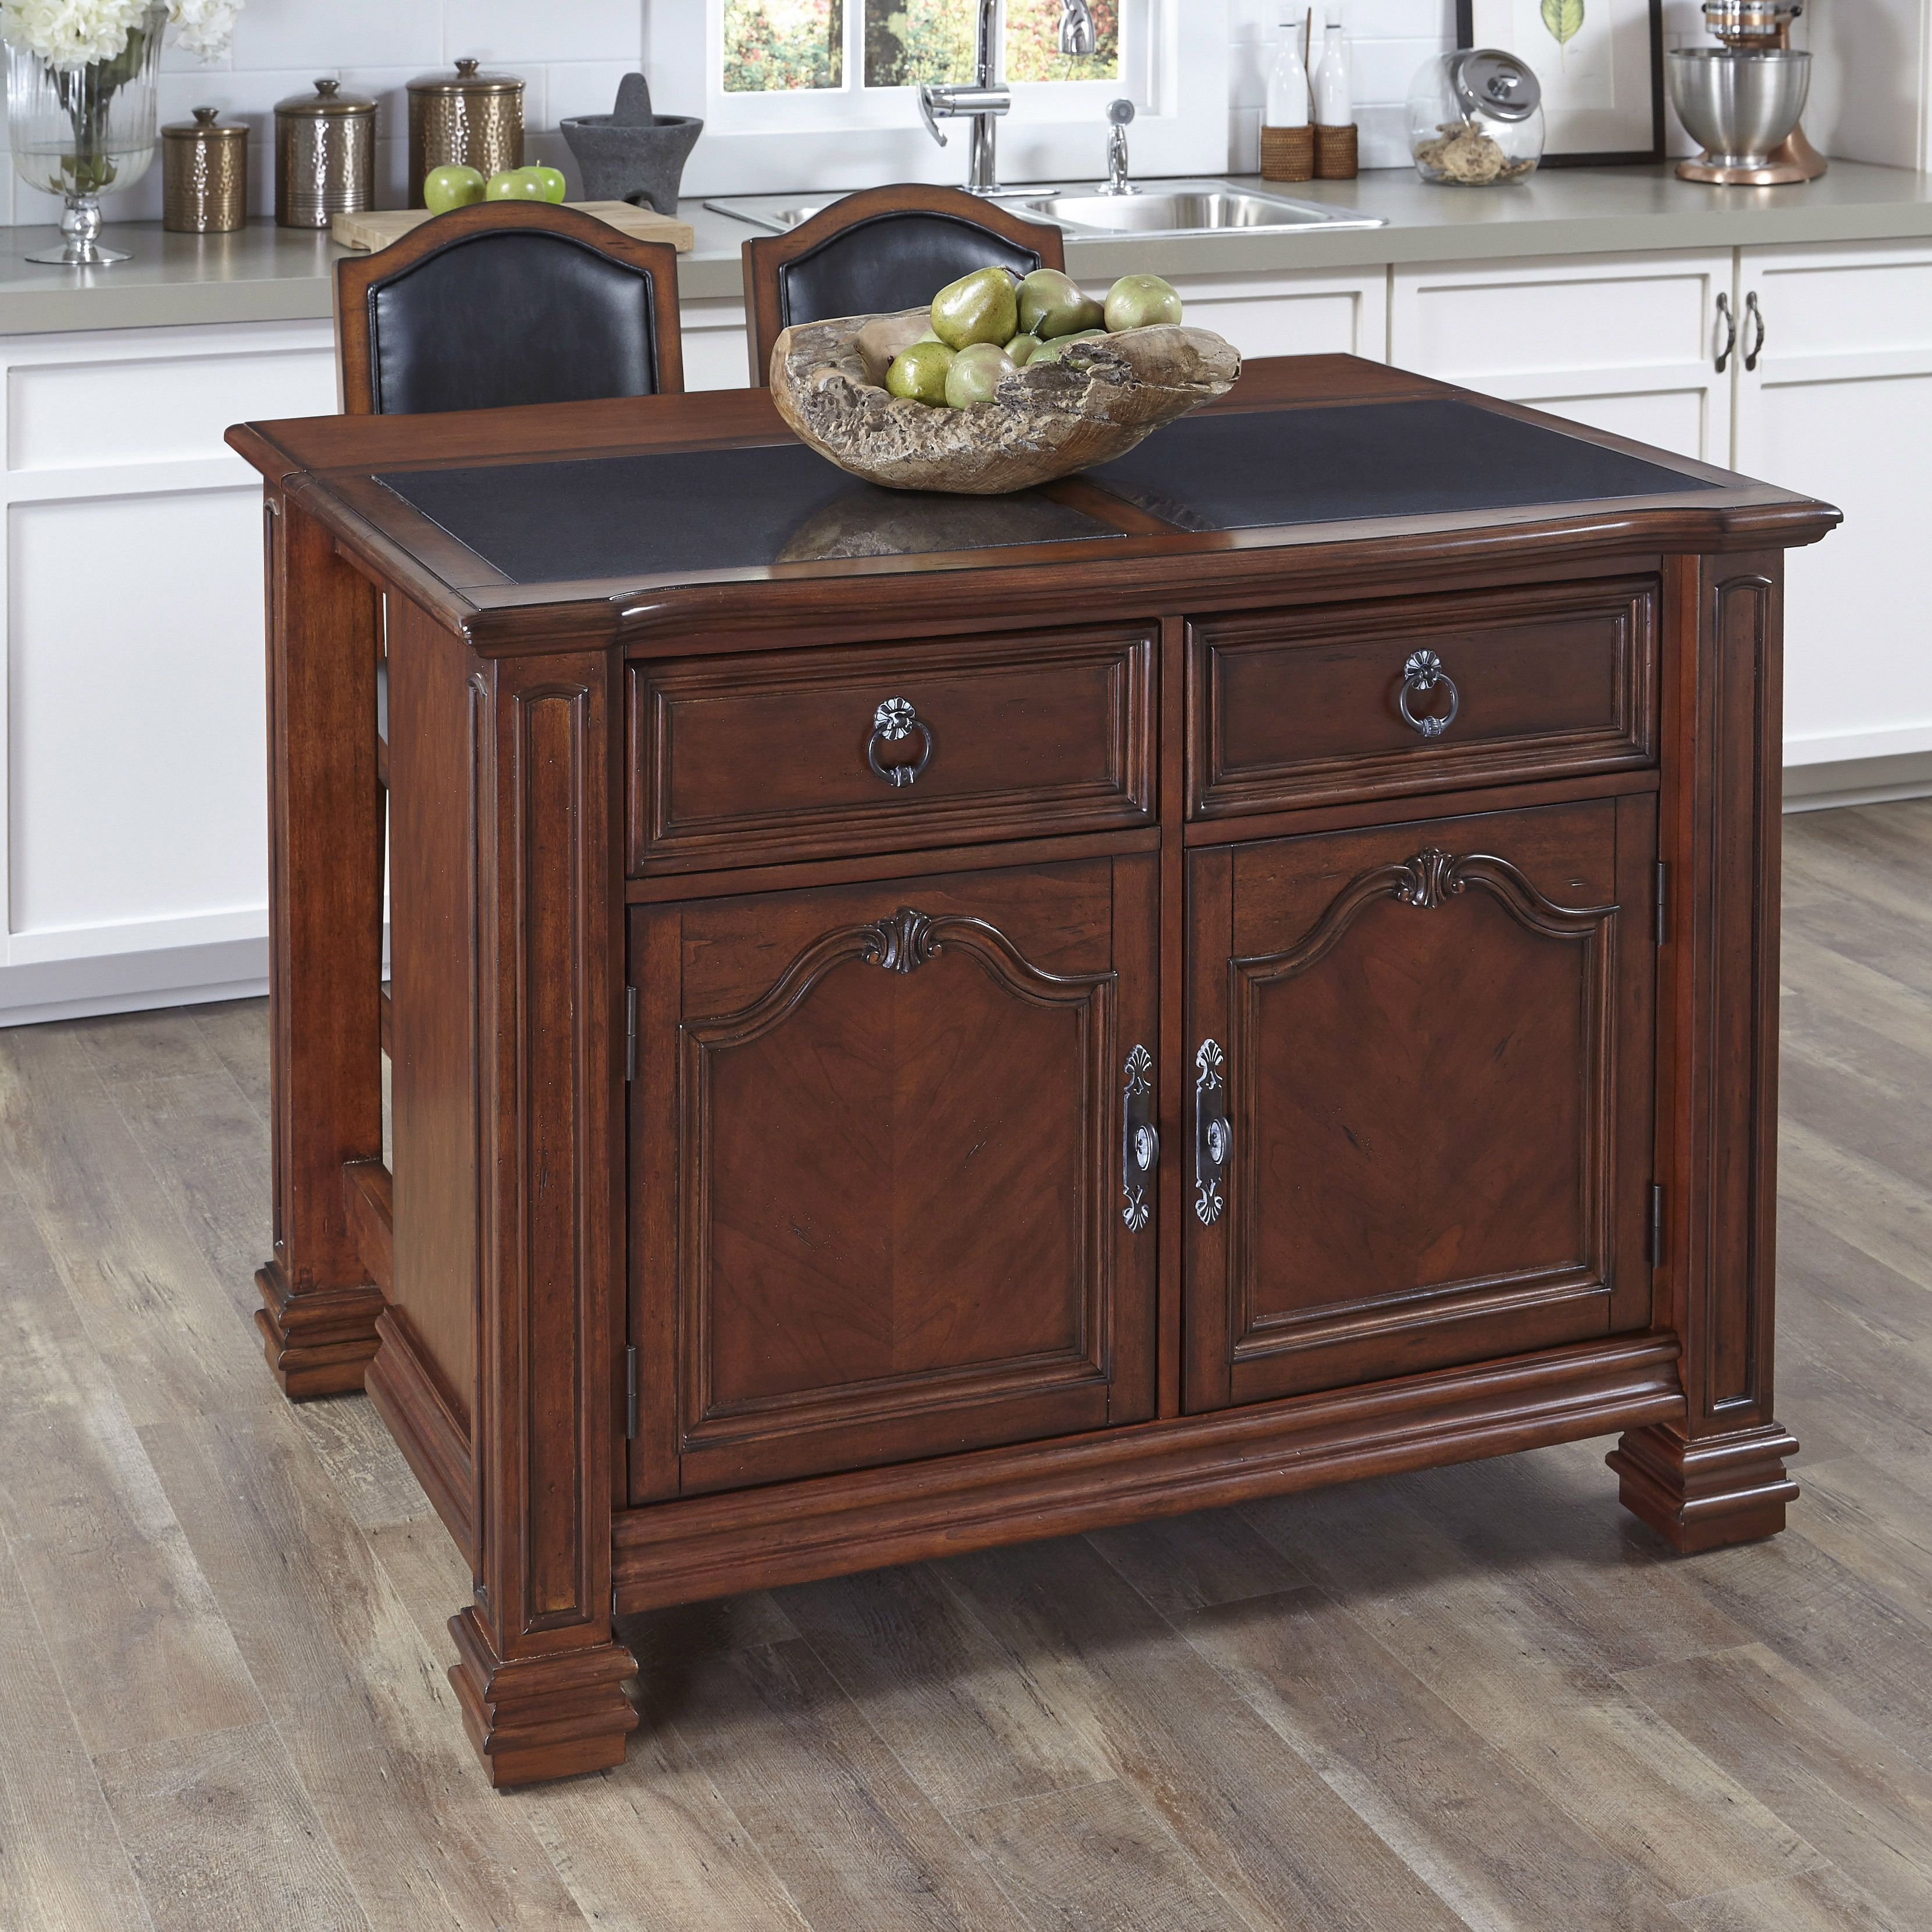 Home Styles Santiago Kitchen Island with Inset Granite Top and 2 Counter Stools